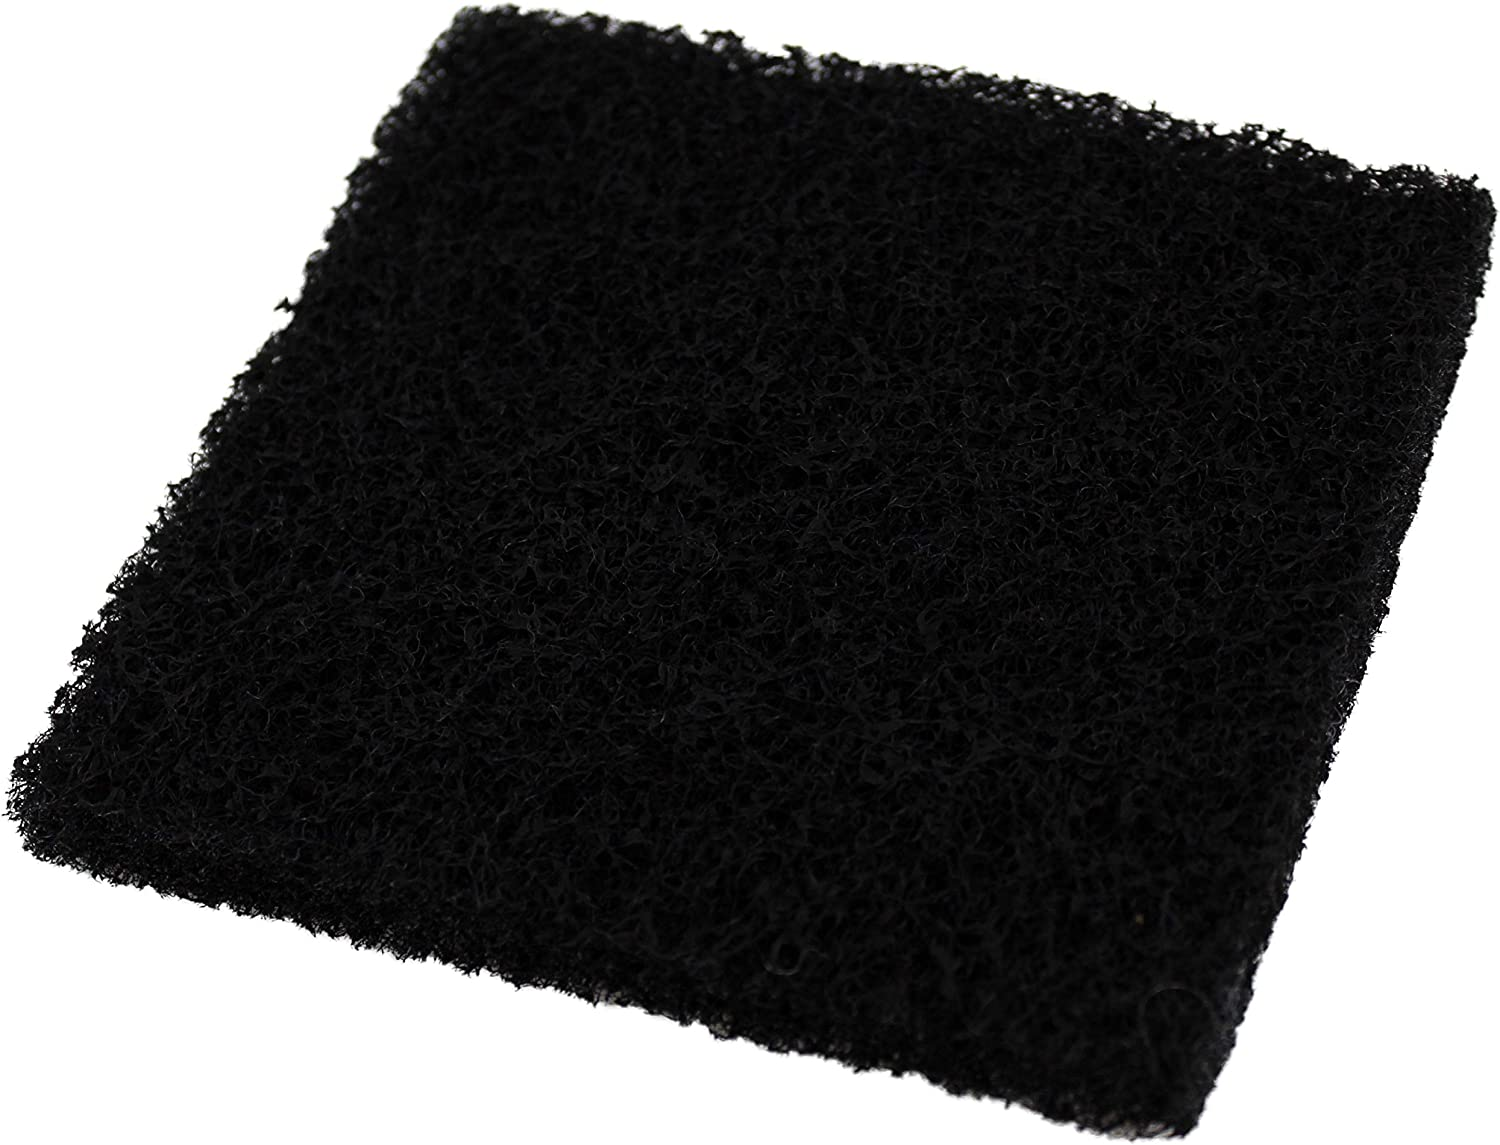 Supplying Demand SD4151750 Trash Compactor Air Filter Compatible With Whirlpool Fits AP6009134 4151750